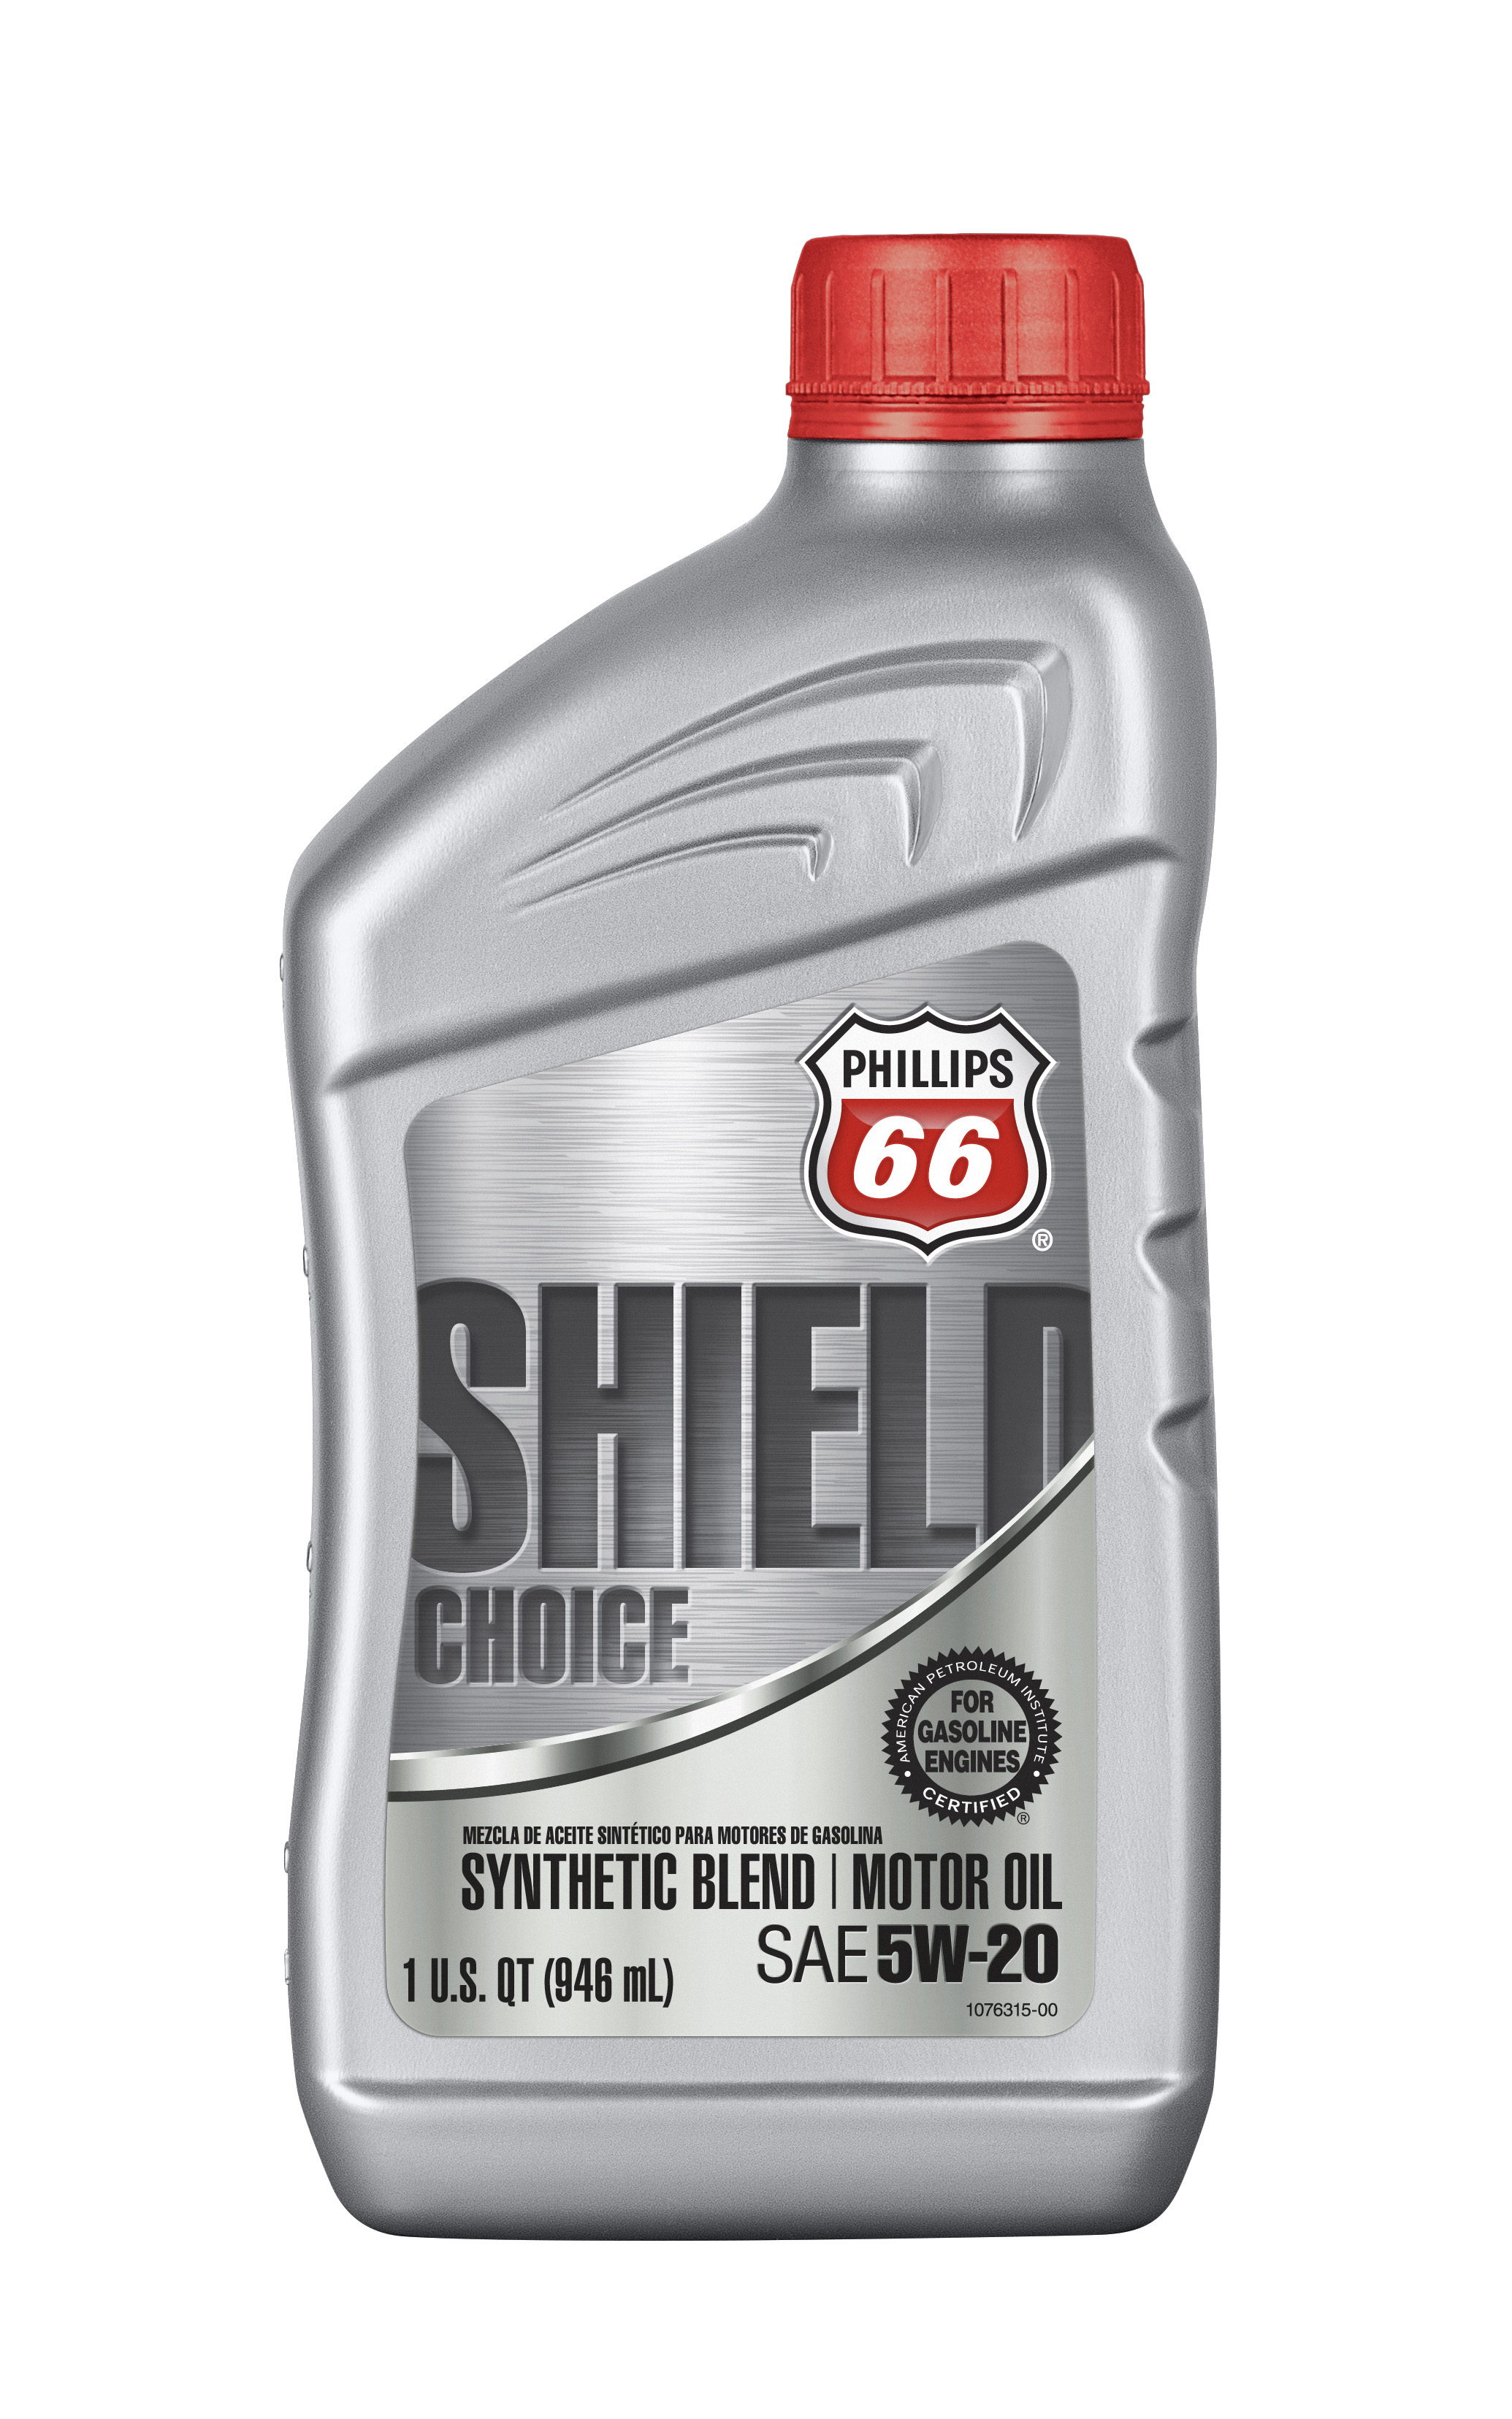 Buy phillips 66 shield choice sb 5w20 12 1 qts case for Why use synthetic blend motor oil